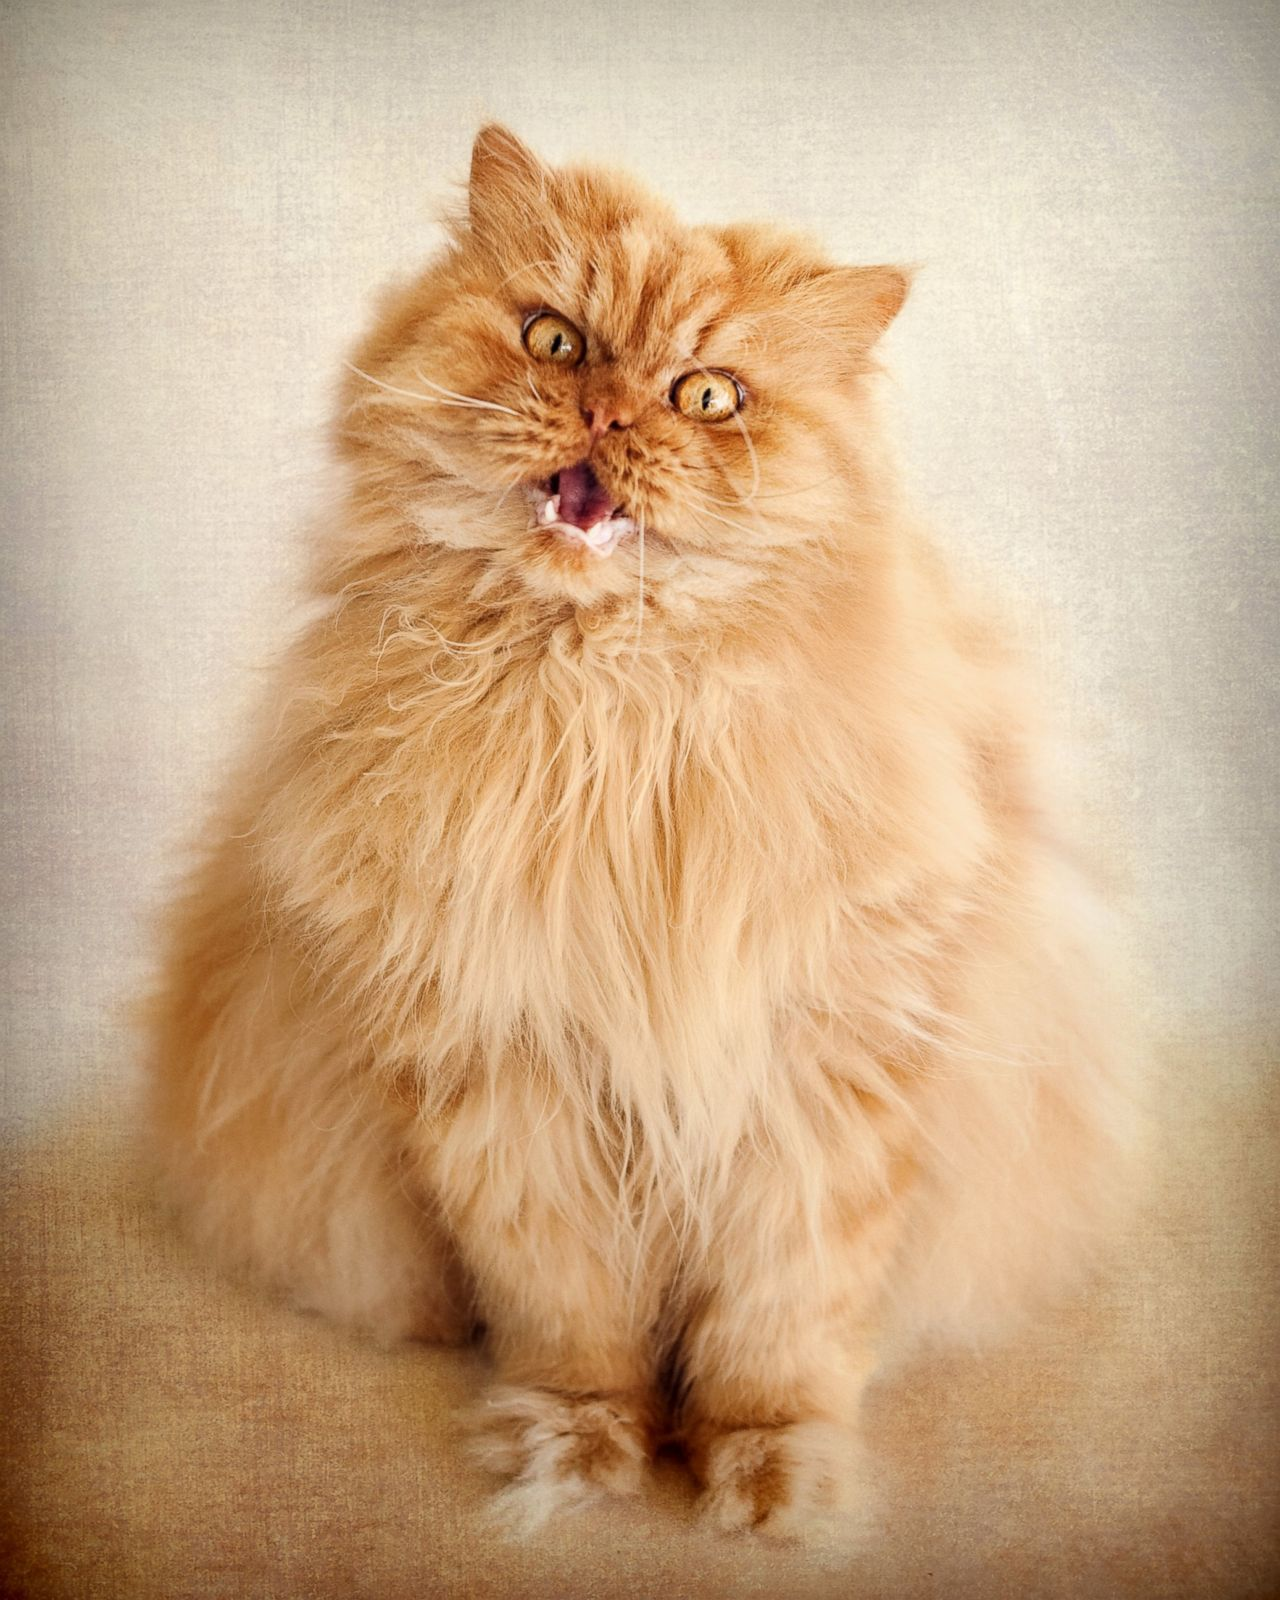 Garfi The Angriest Cat Photos ABC News - Garfi is officially the worlds angriest cat